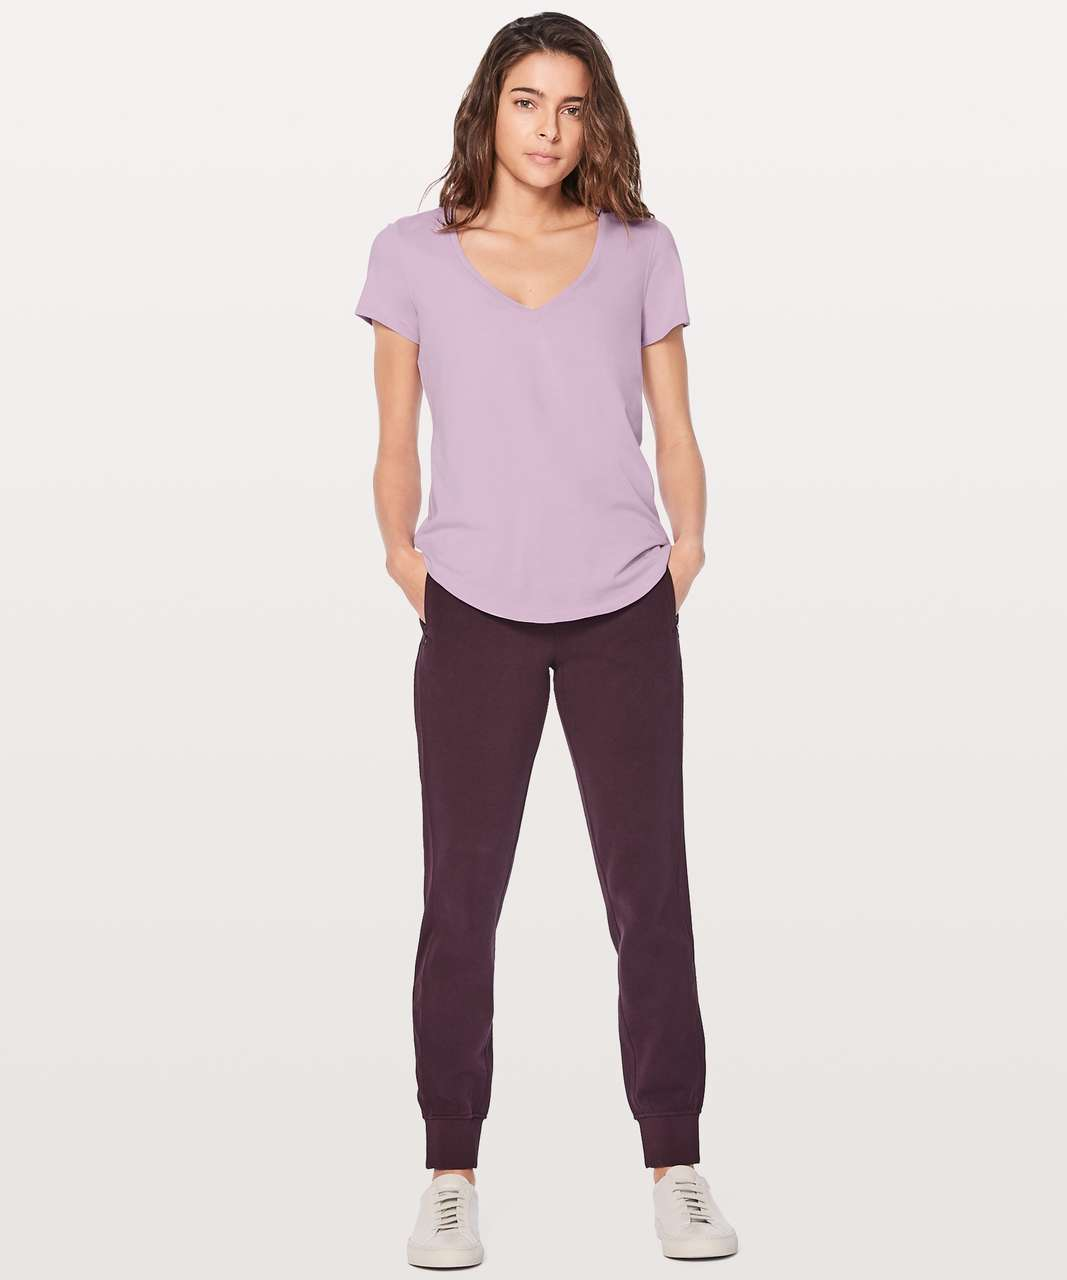 Lululemon Love Tee V - Lilac Quartz